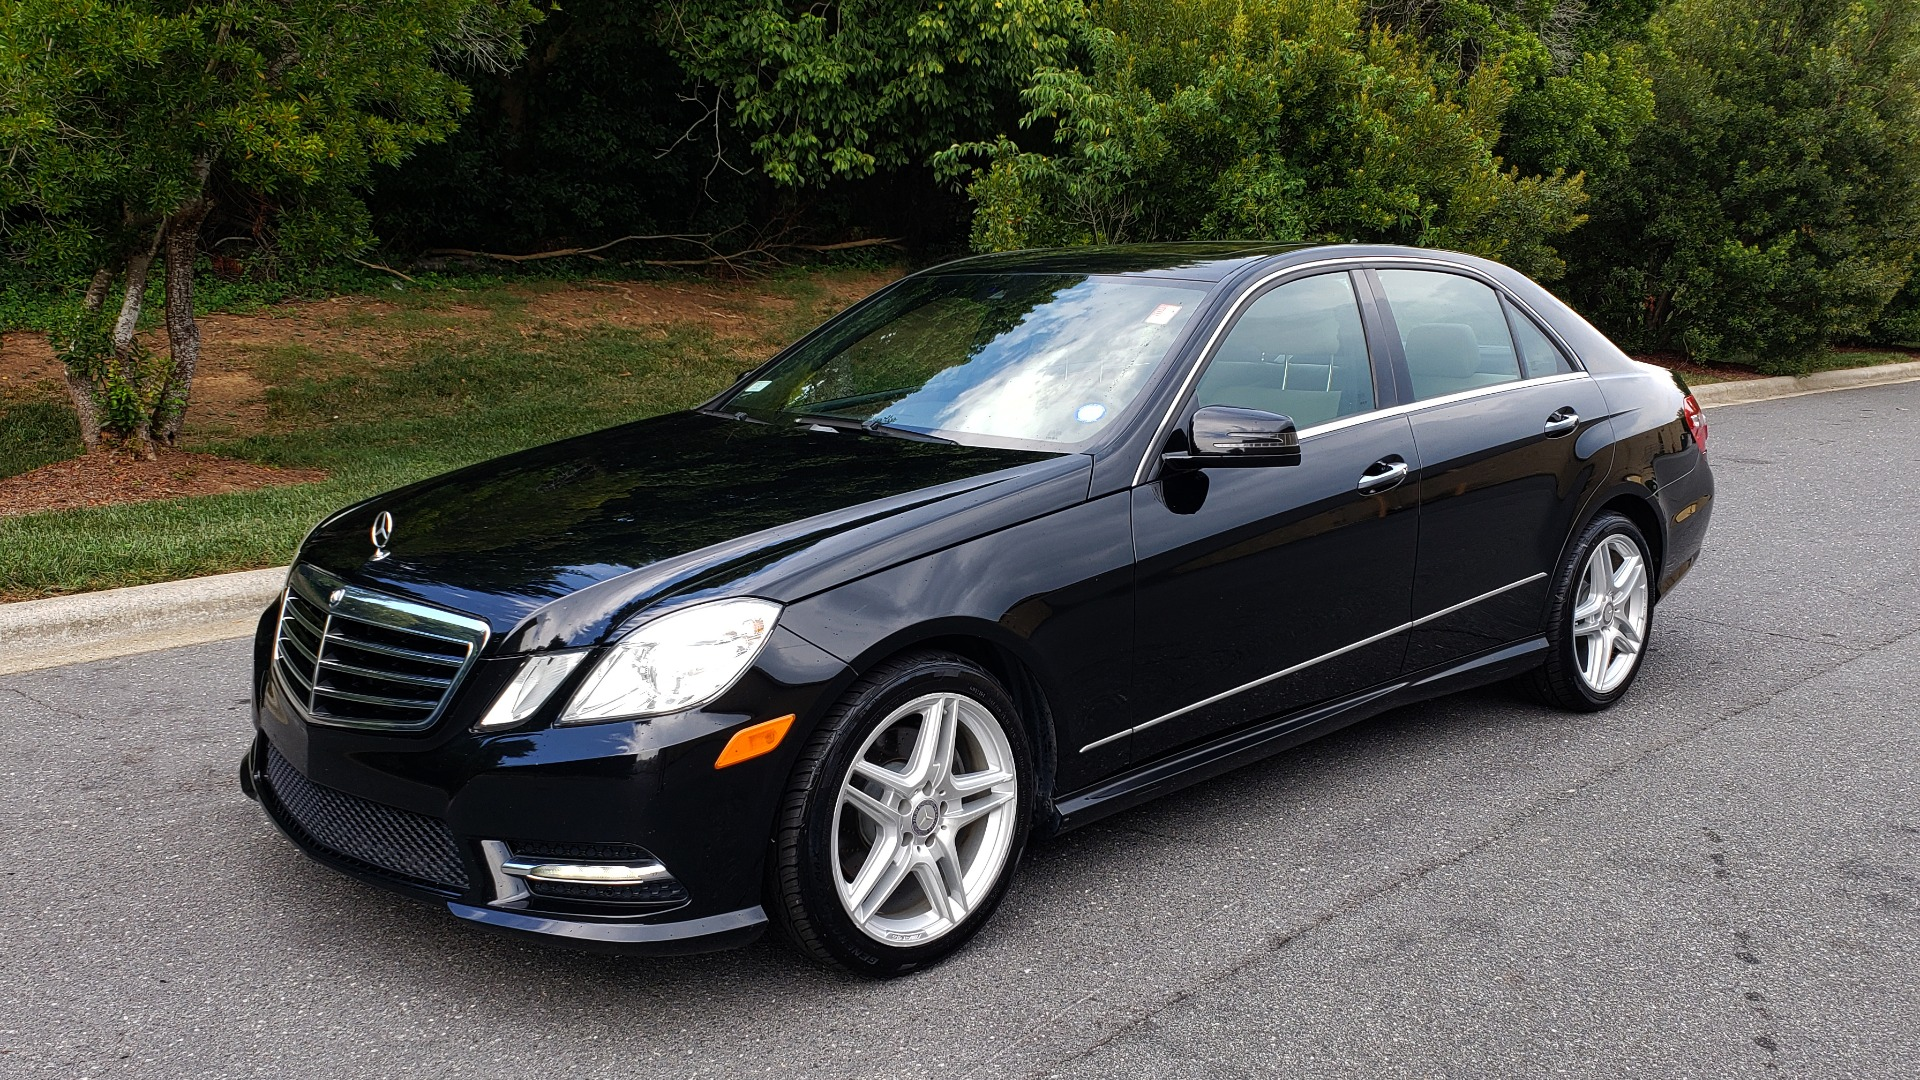 Used 2013 Mercedes-Benz E-Class E 350 Luxury for sale Sold at Formula Imports in Charlotte NC 28227 1